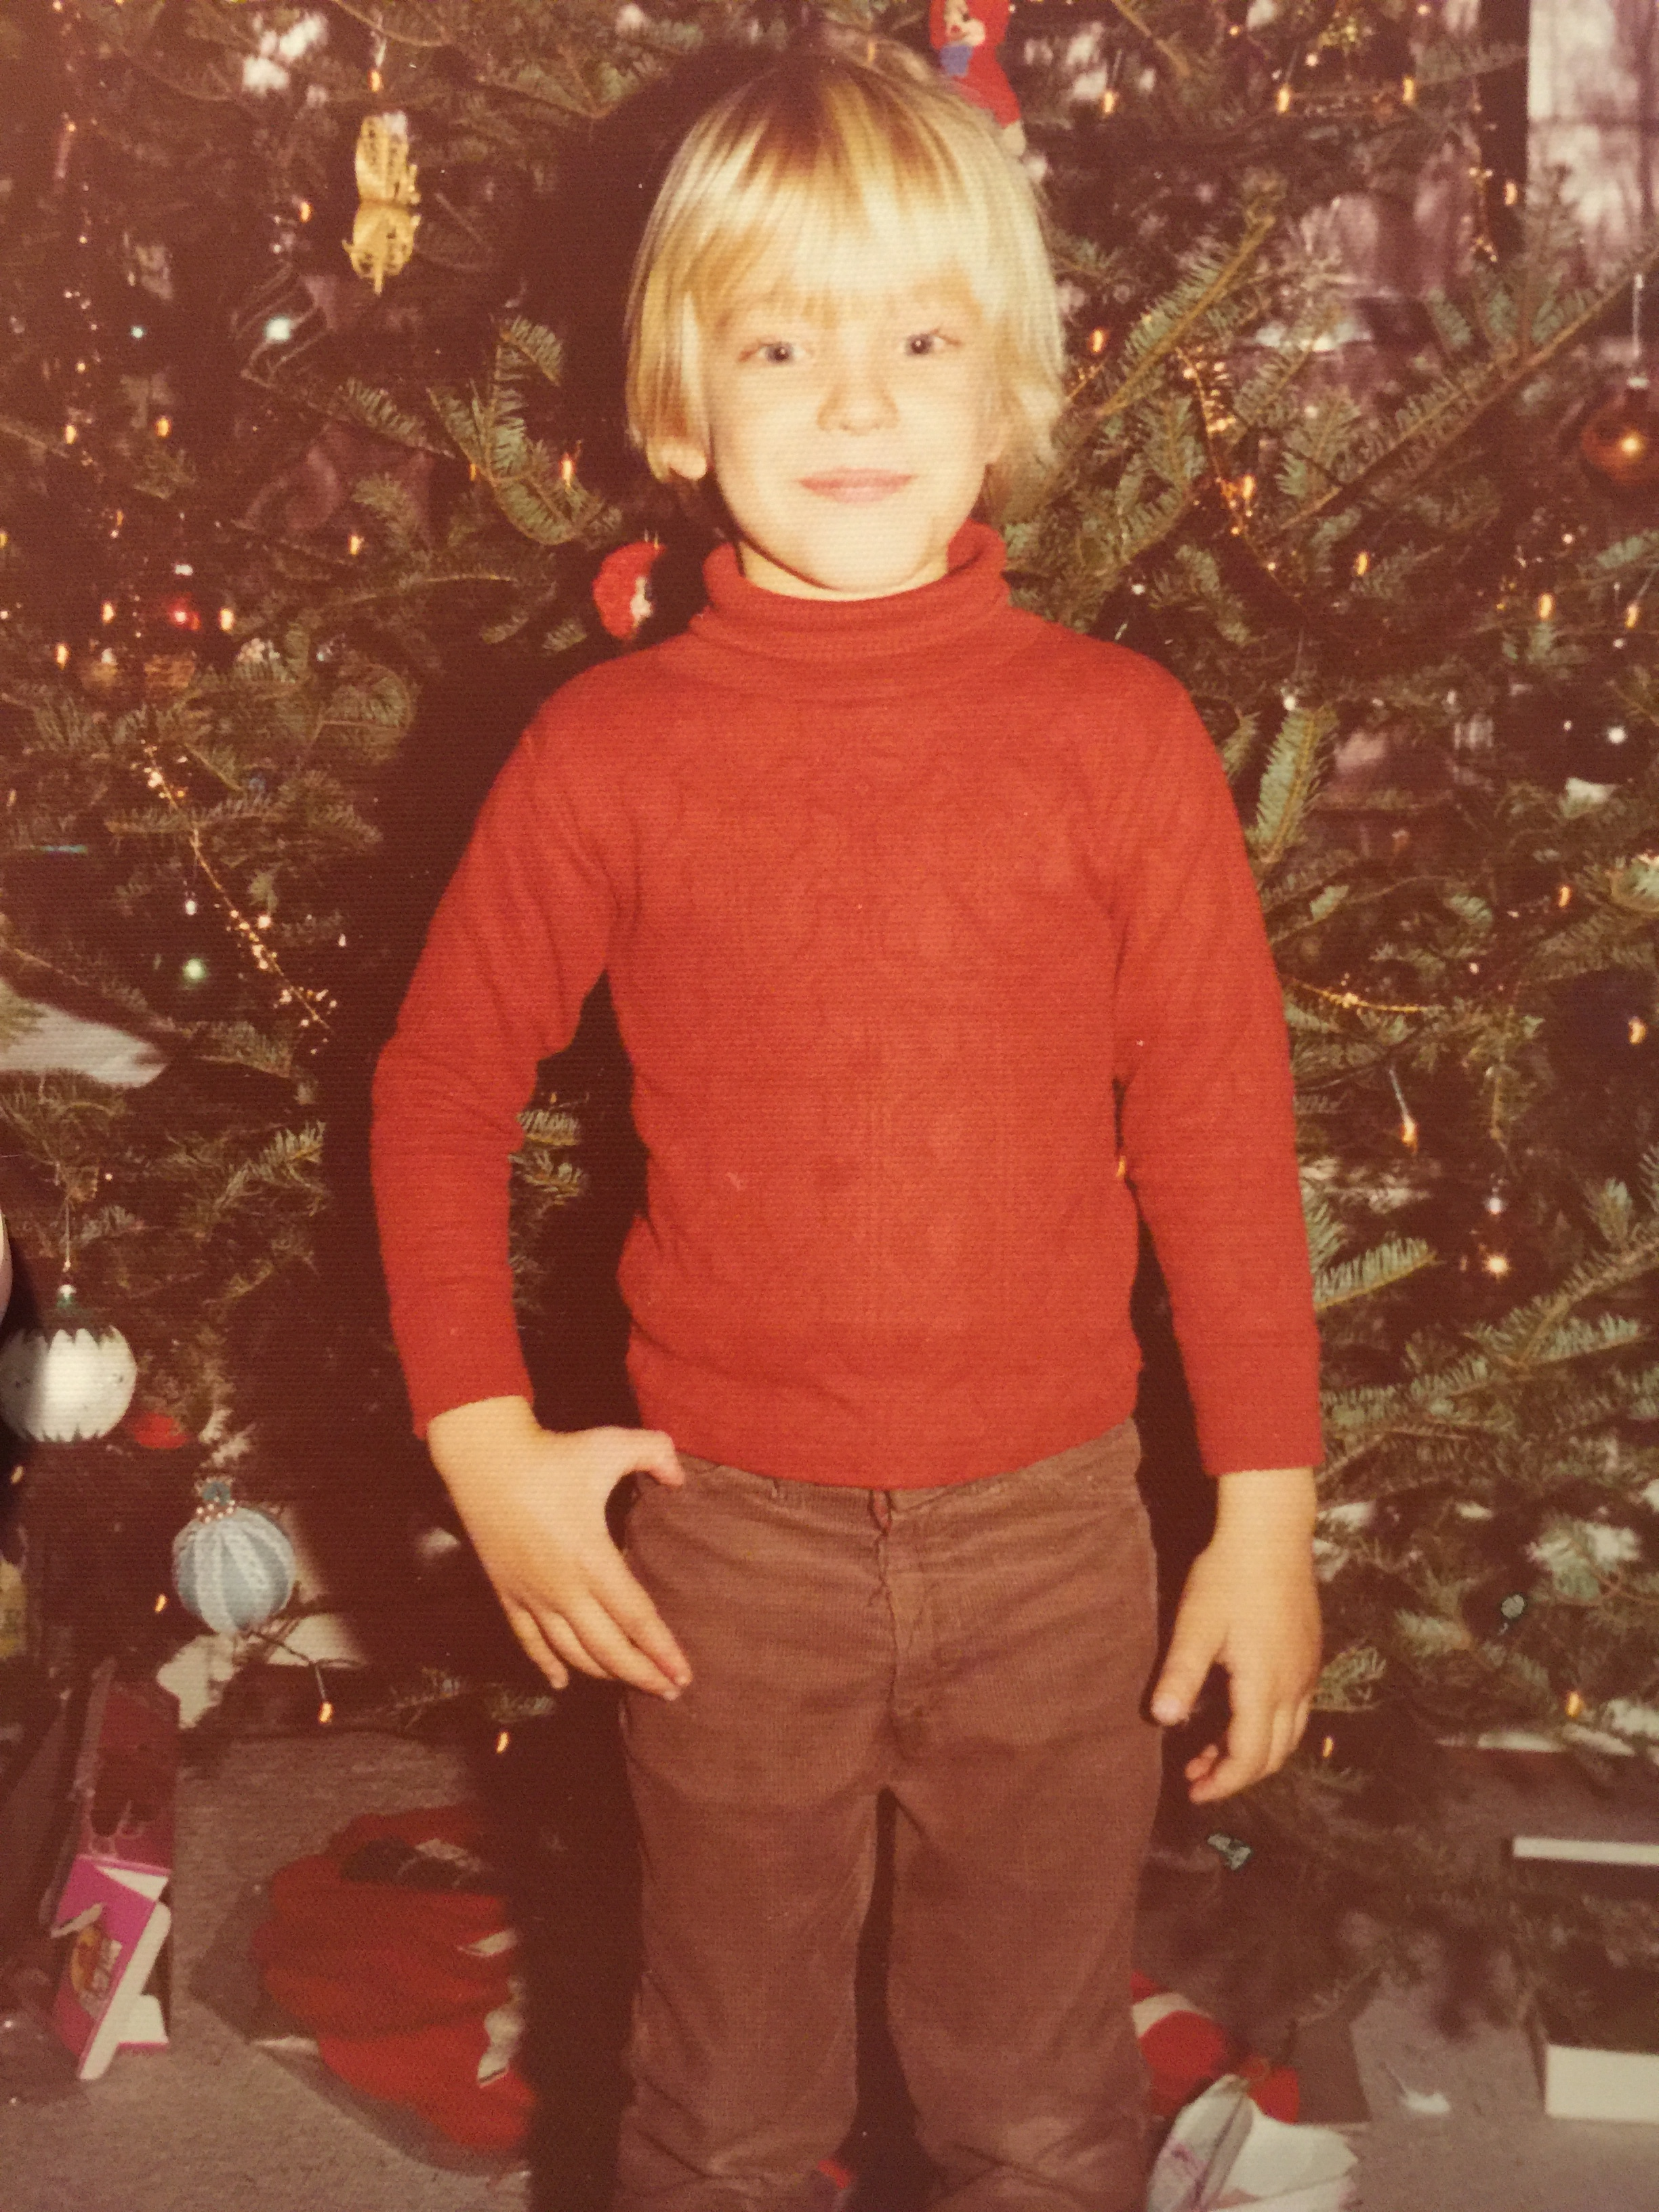 Here's me in the mid-1970s with my Beatle-esque mop top, around the time I received the Magical Mystery Tour as a Christmas gift